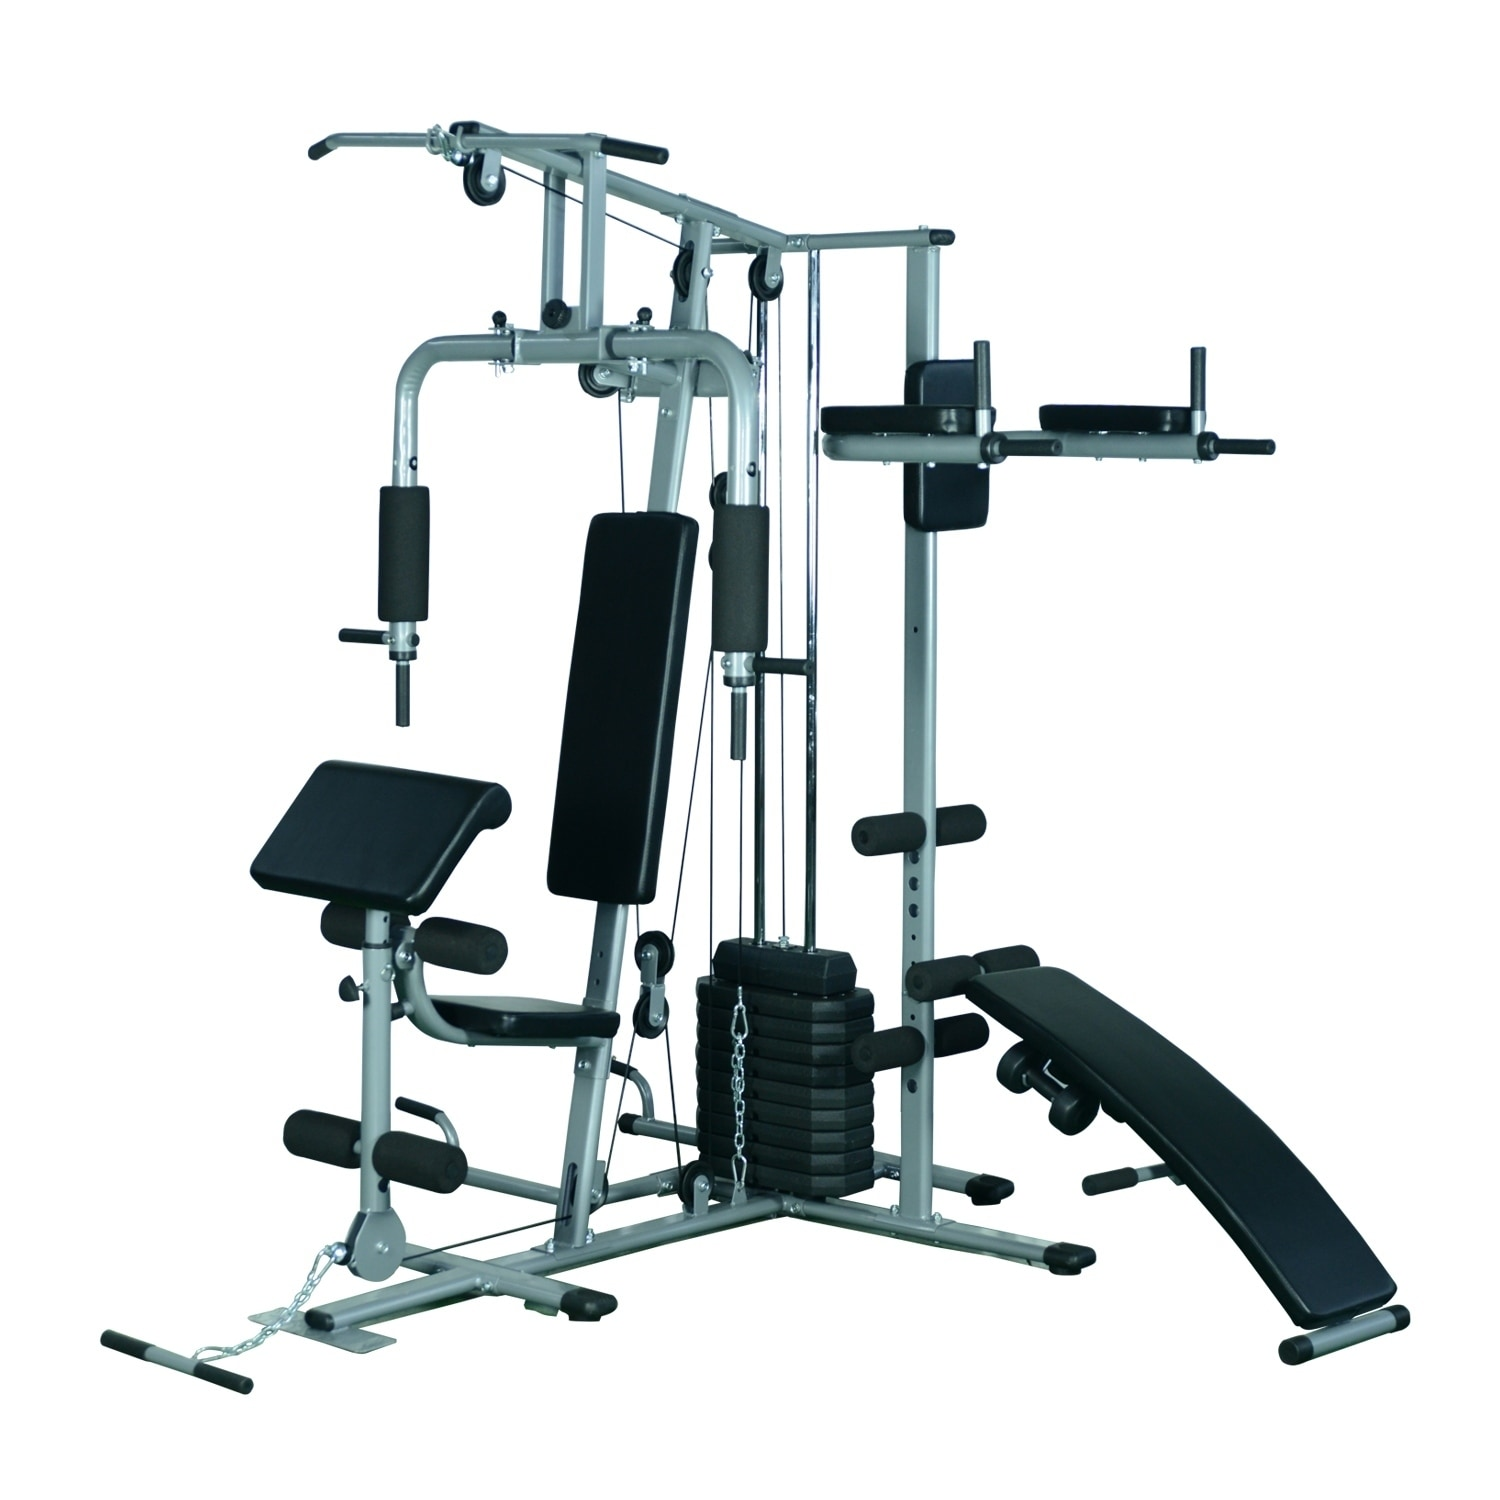 Soozier Complete Home Fitness Station Gym Machine with Weight Stack - Silver 2bf26b3c5